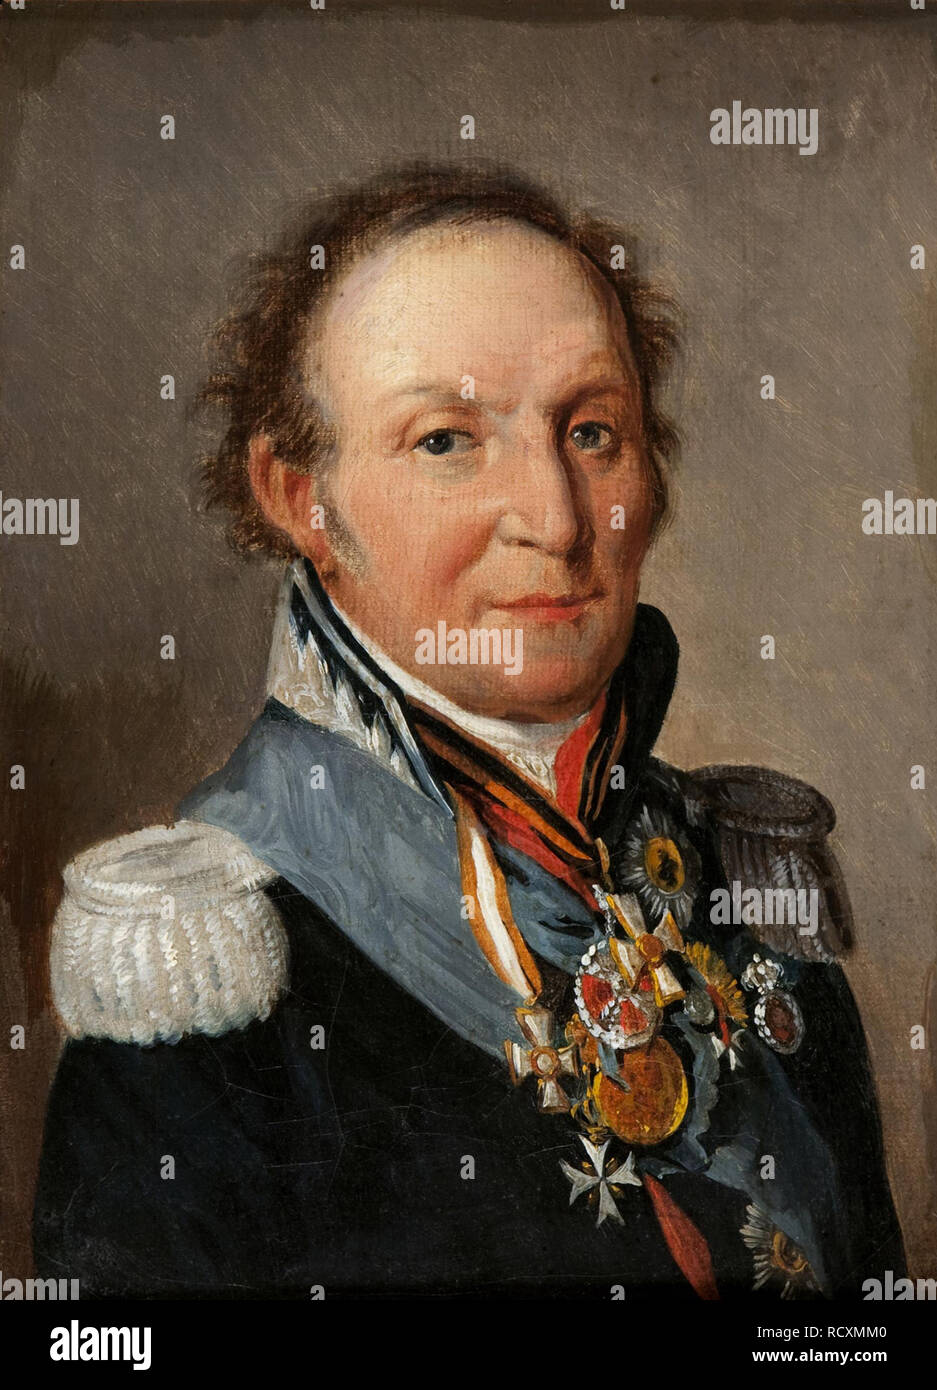 Portrait of Field Marshal Count Ludwig Adolf Peter of Sayn-Wittgenstein-Ludwigsburg (1769-1843). Museum: Musée Marmottan Monet, Paris. Author: Boilly, Louis-Leopold. - Stock Image